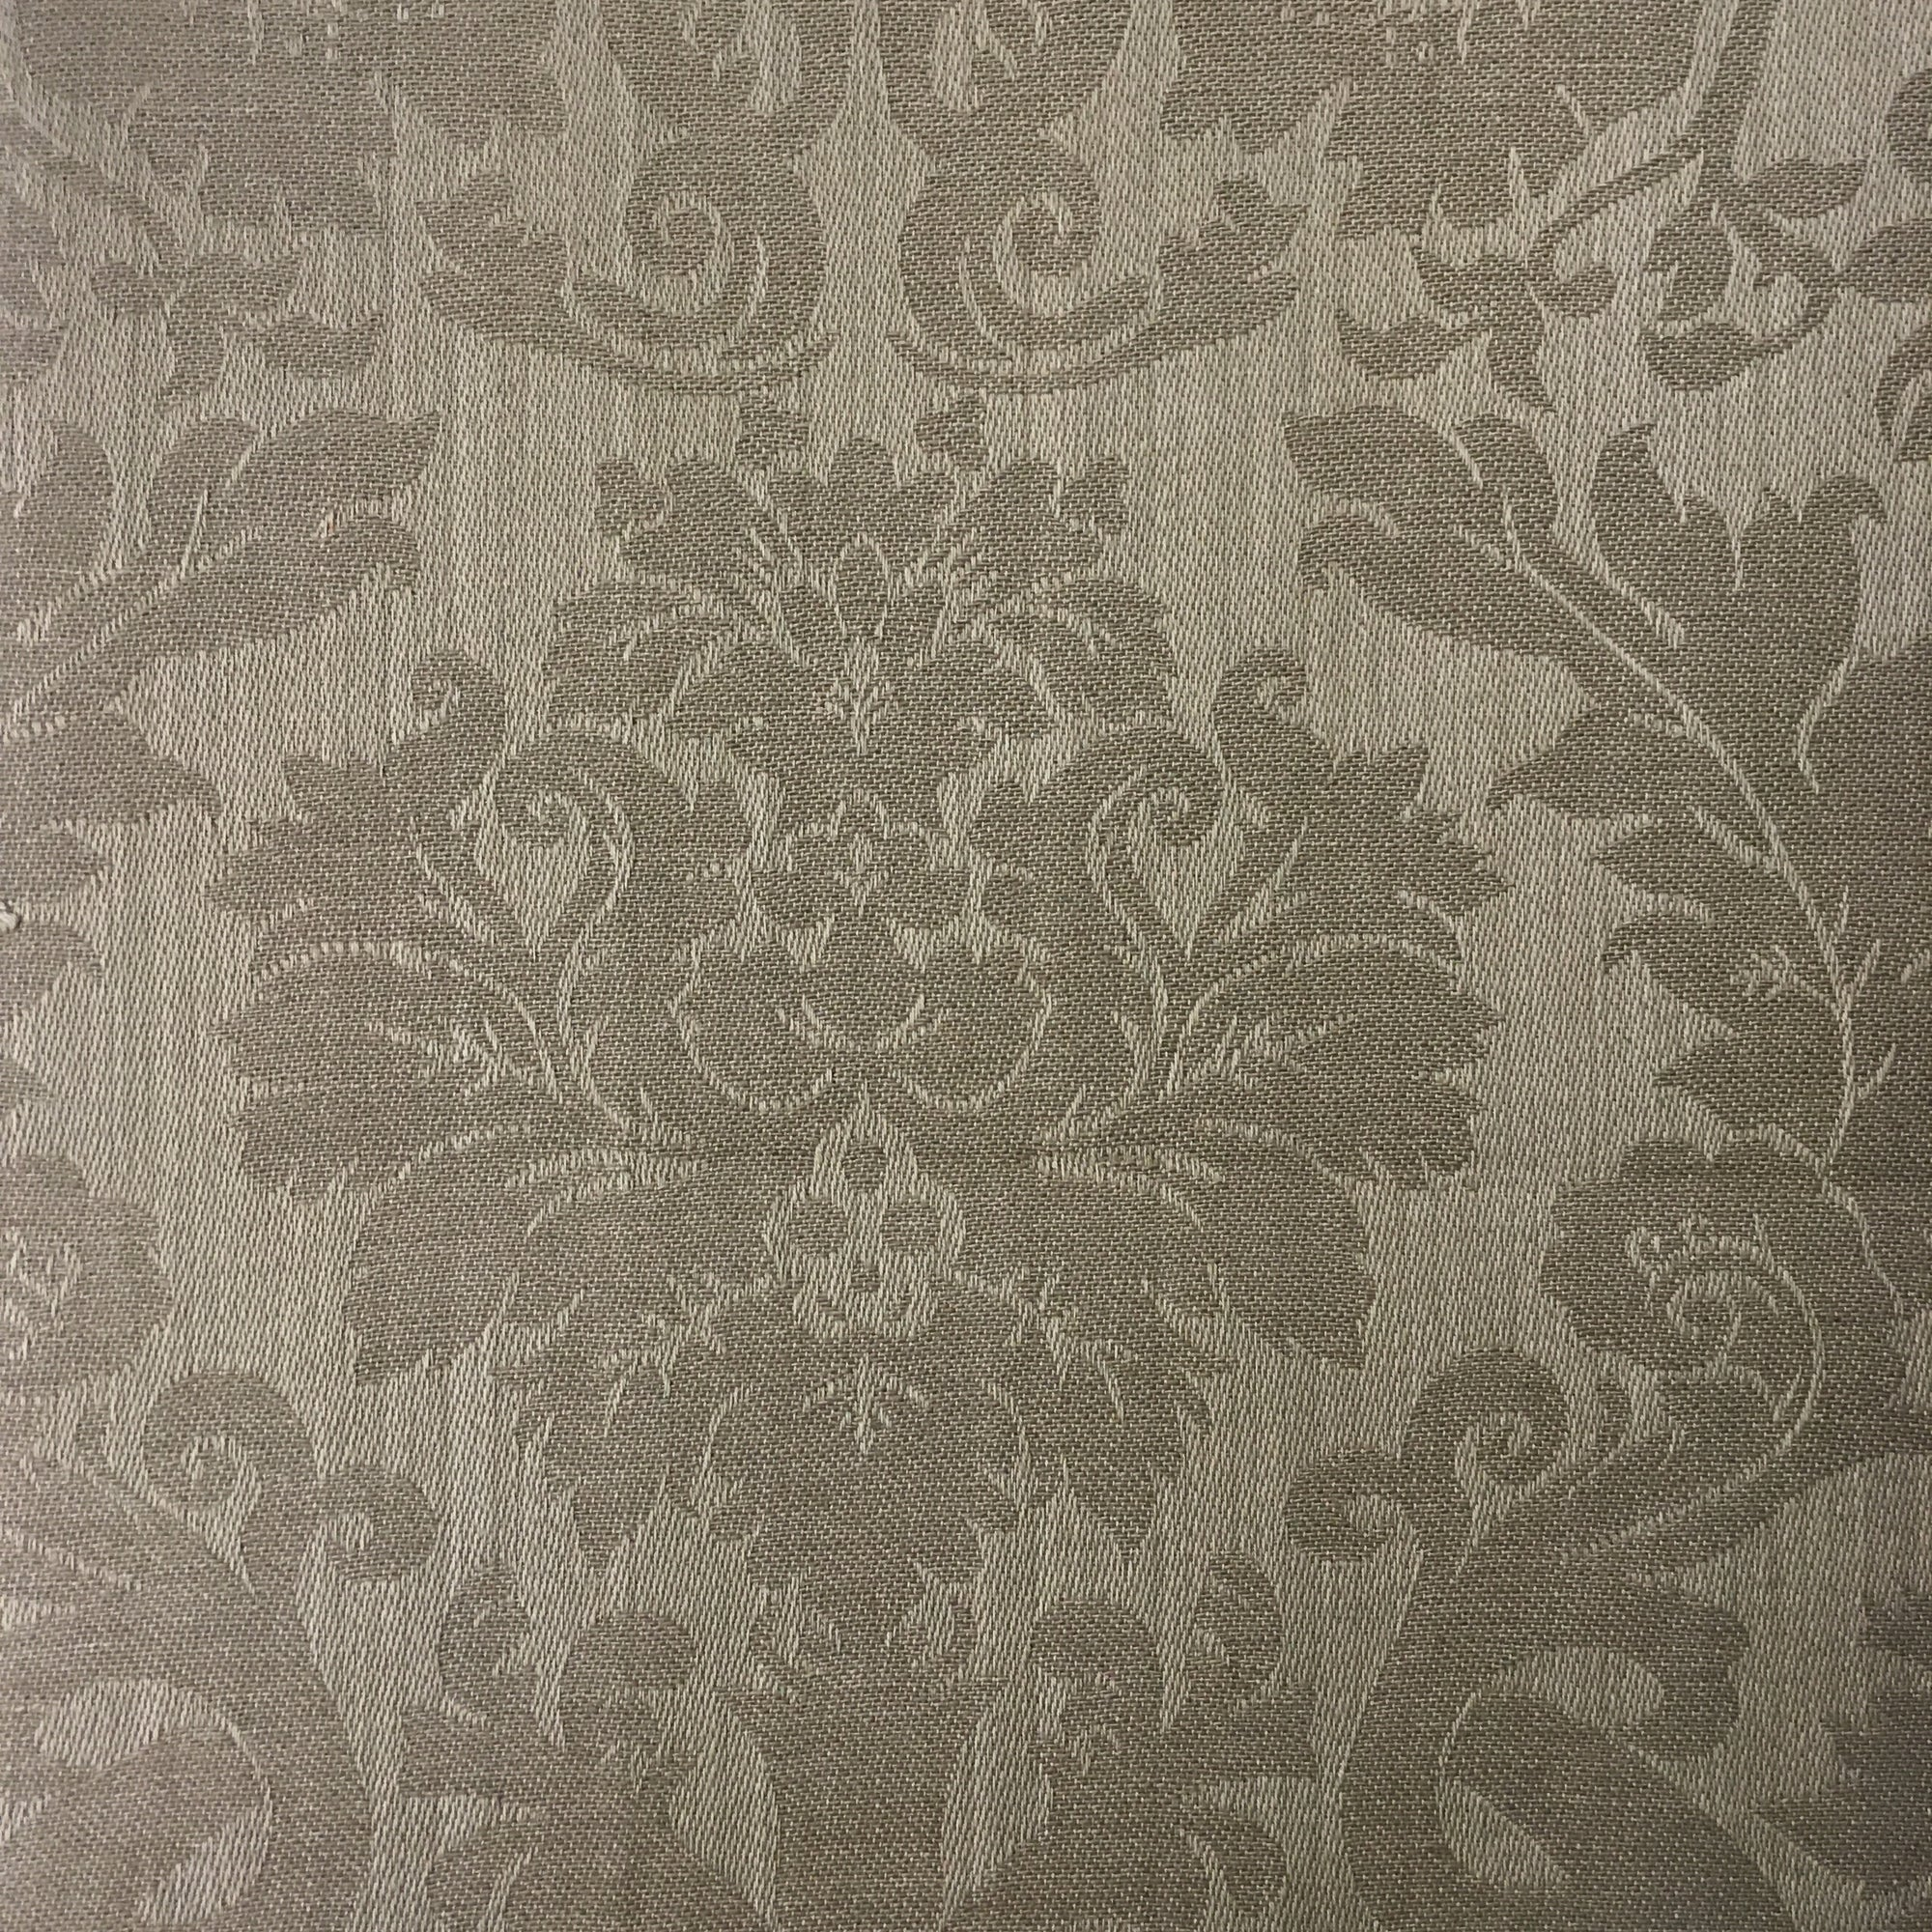 "Mahogany Tablecloth 60x90"" Damask Taupe"